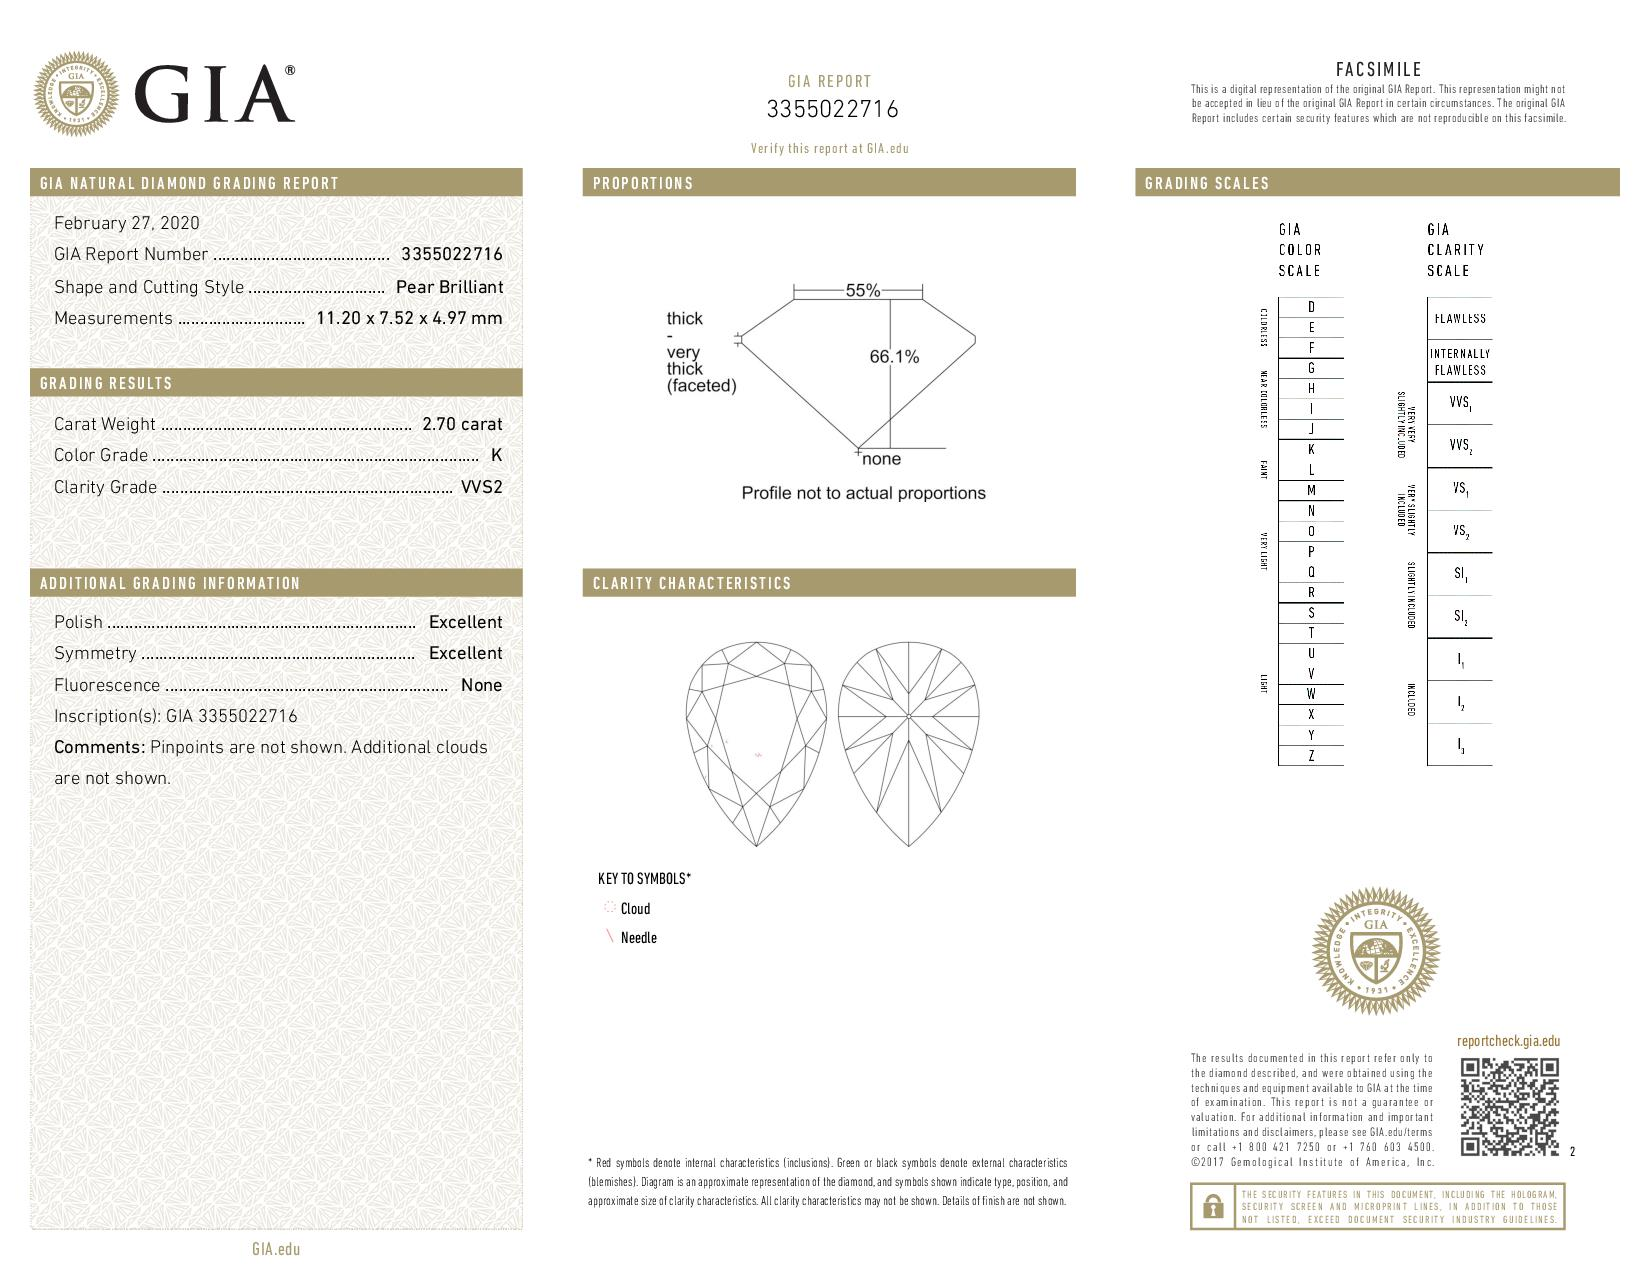 This is a 2.70 carat pear shape, K color, VVS2 clarity natural diamond accompanied by a GIA grading report.